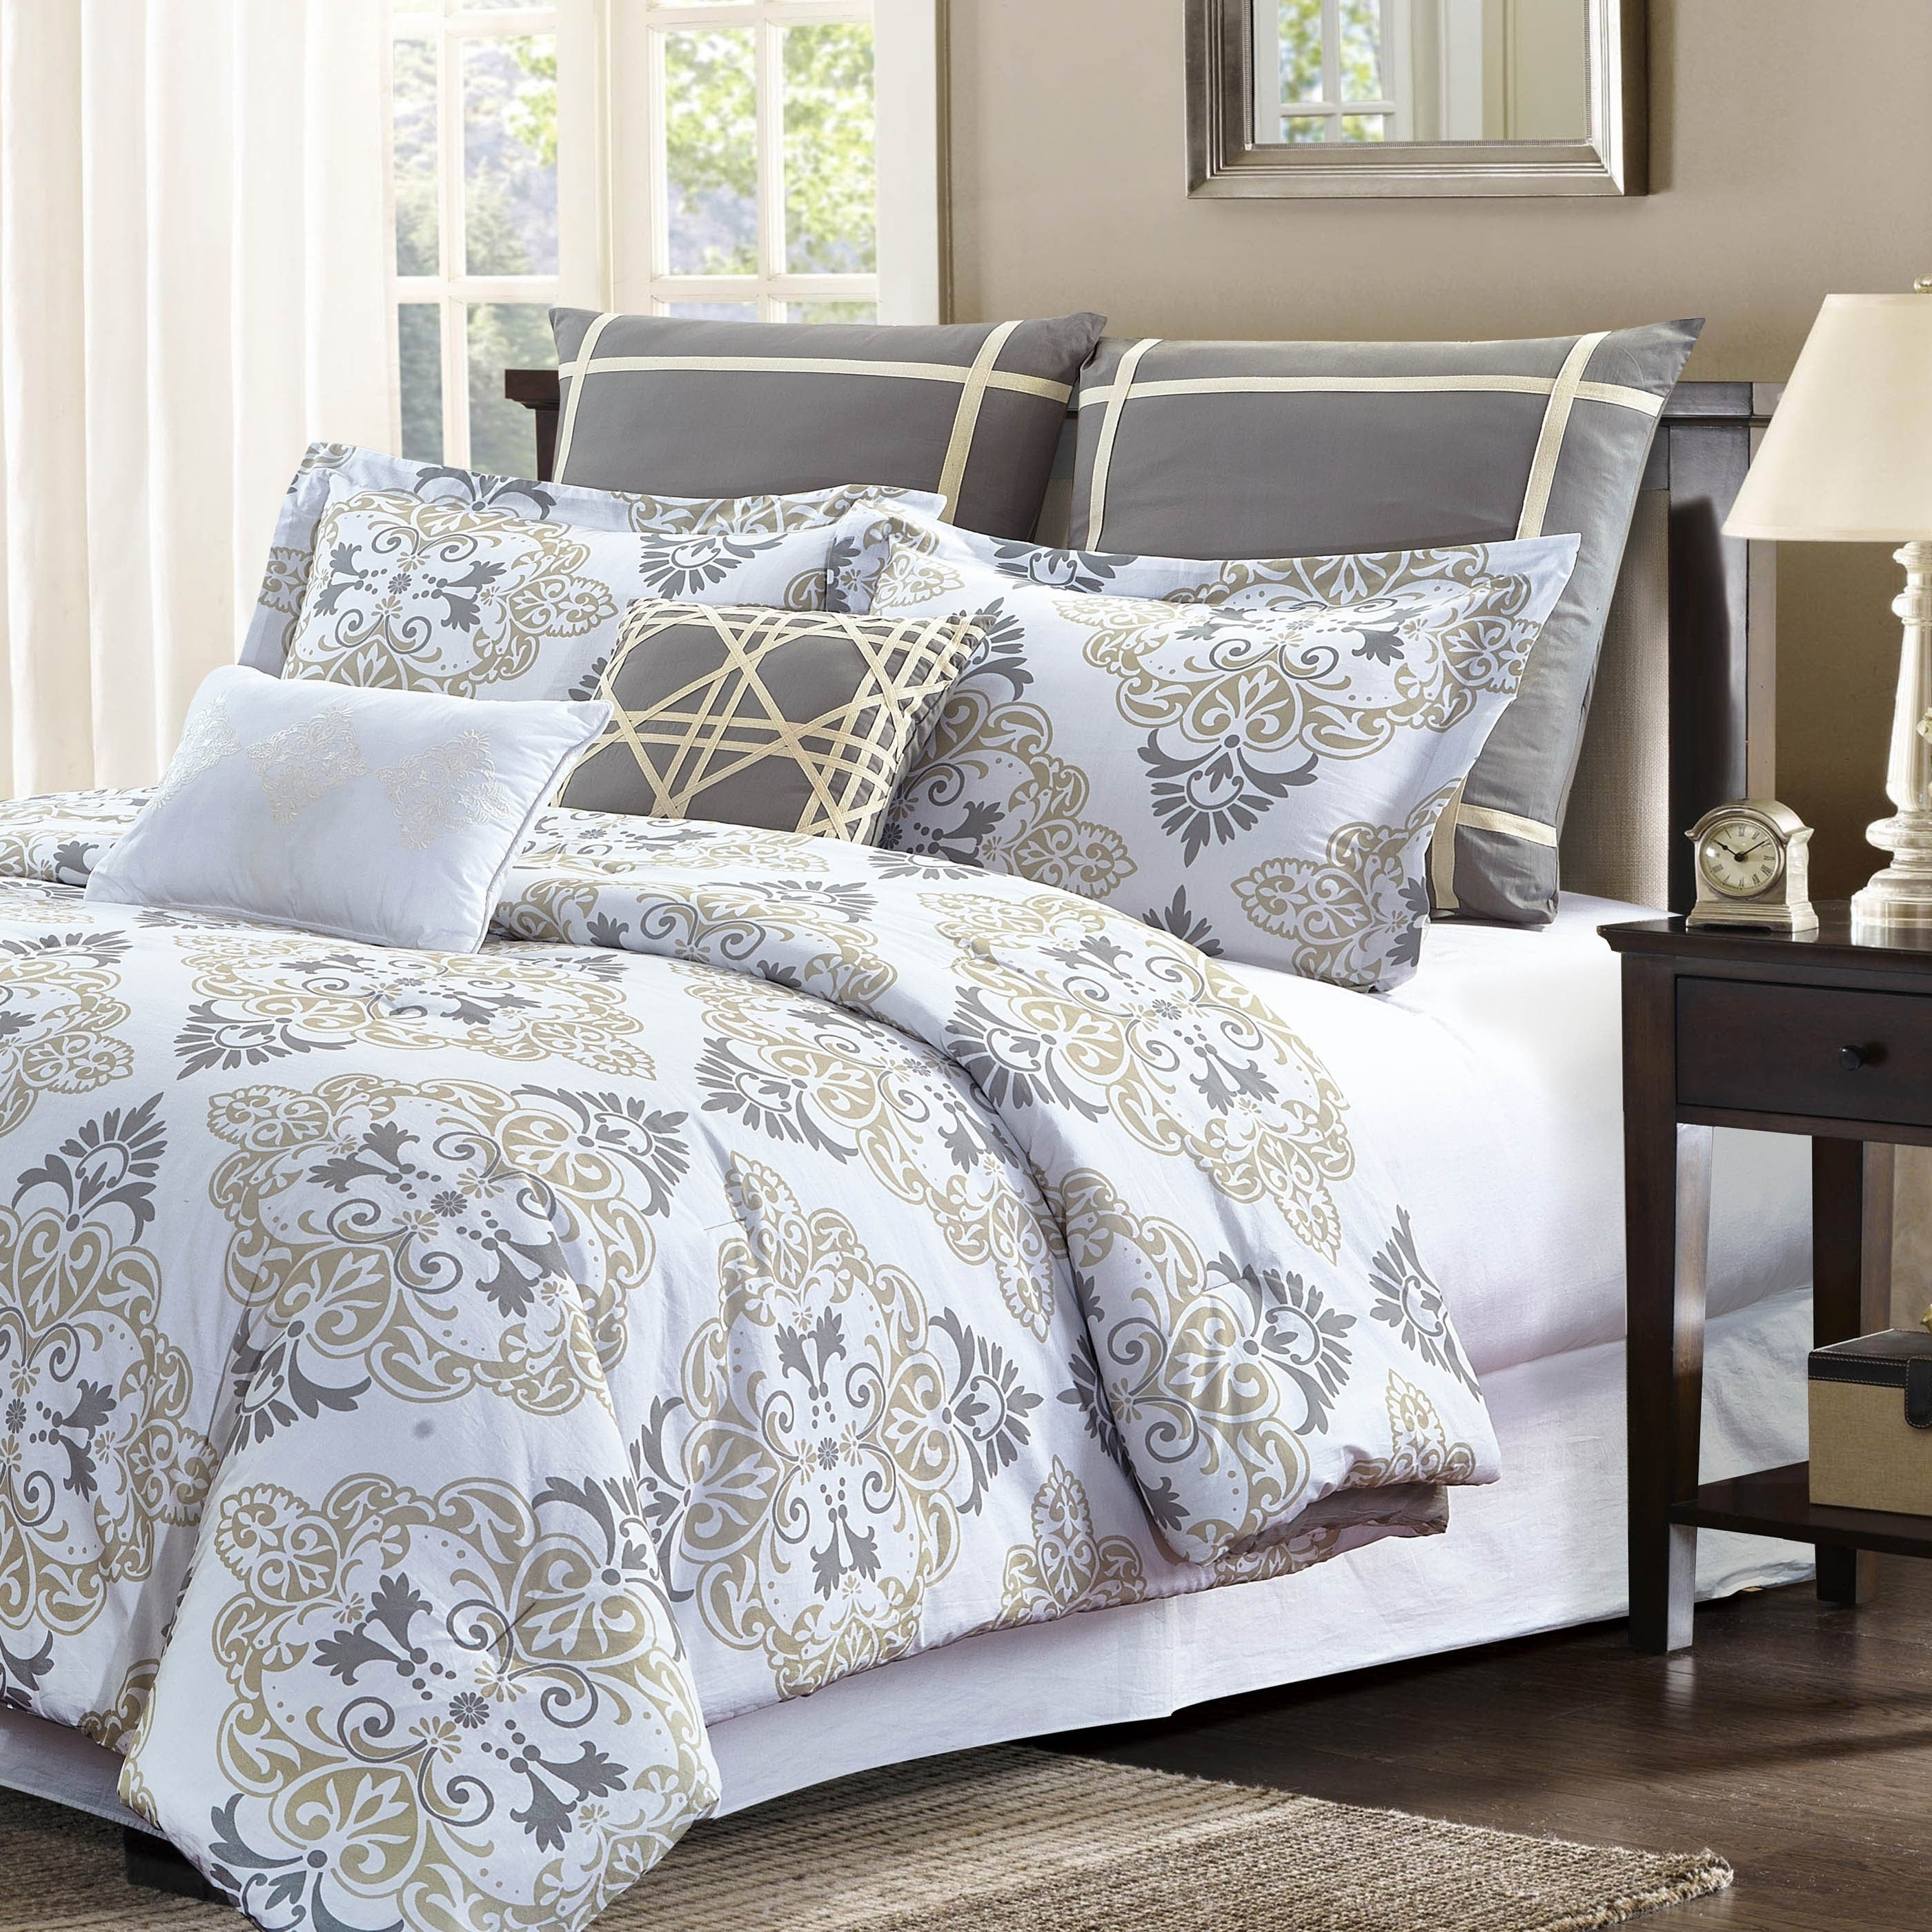 Shop Style Quarters Suri 7pc Comforter Set   Gray and Taupe Damask